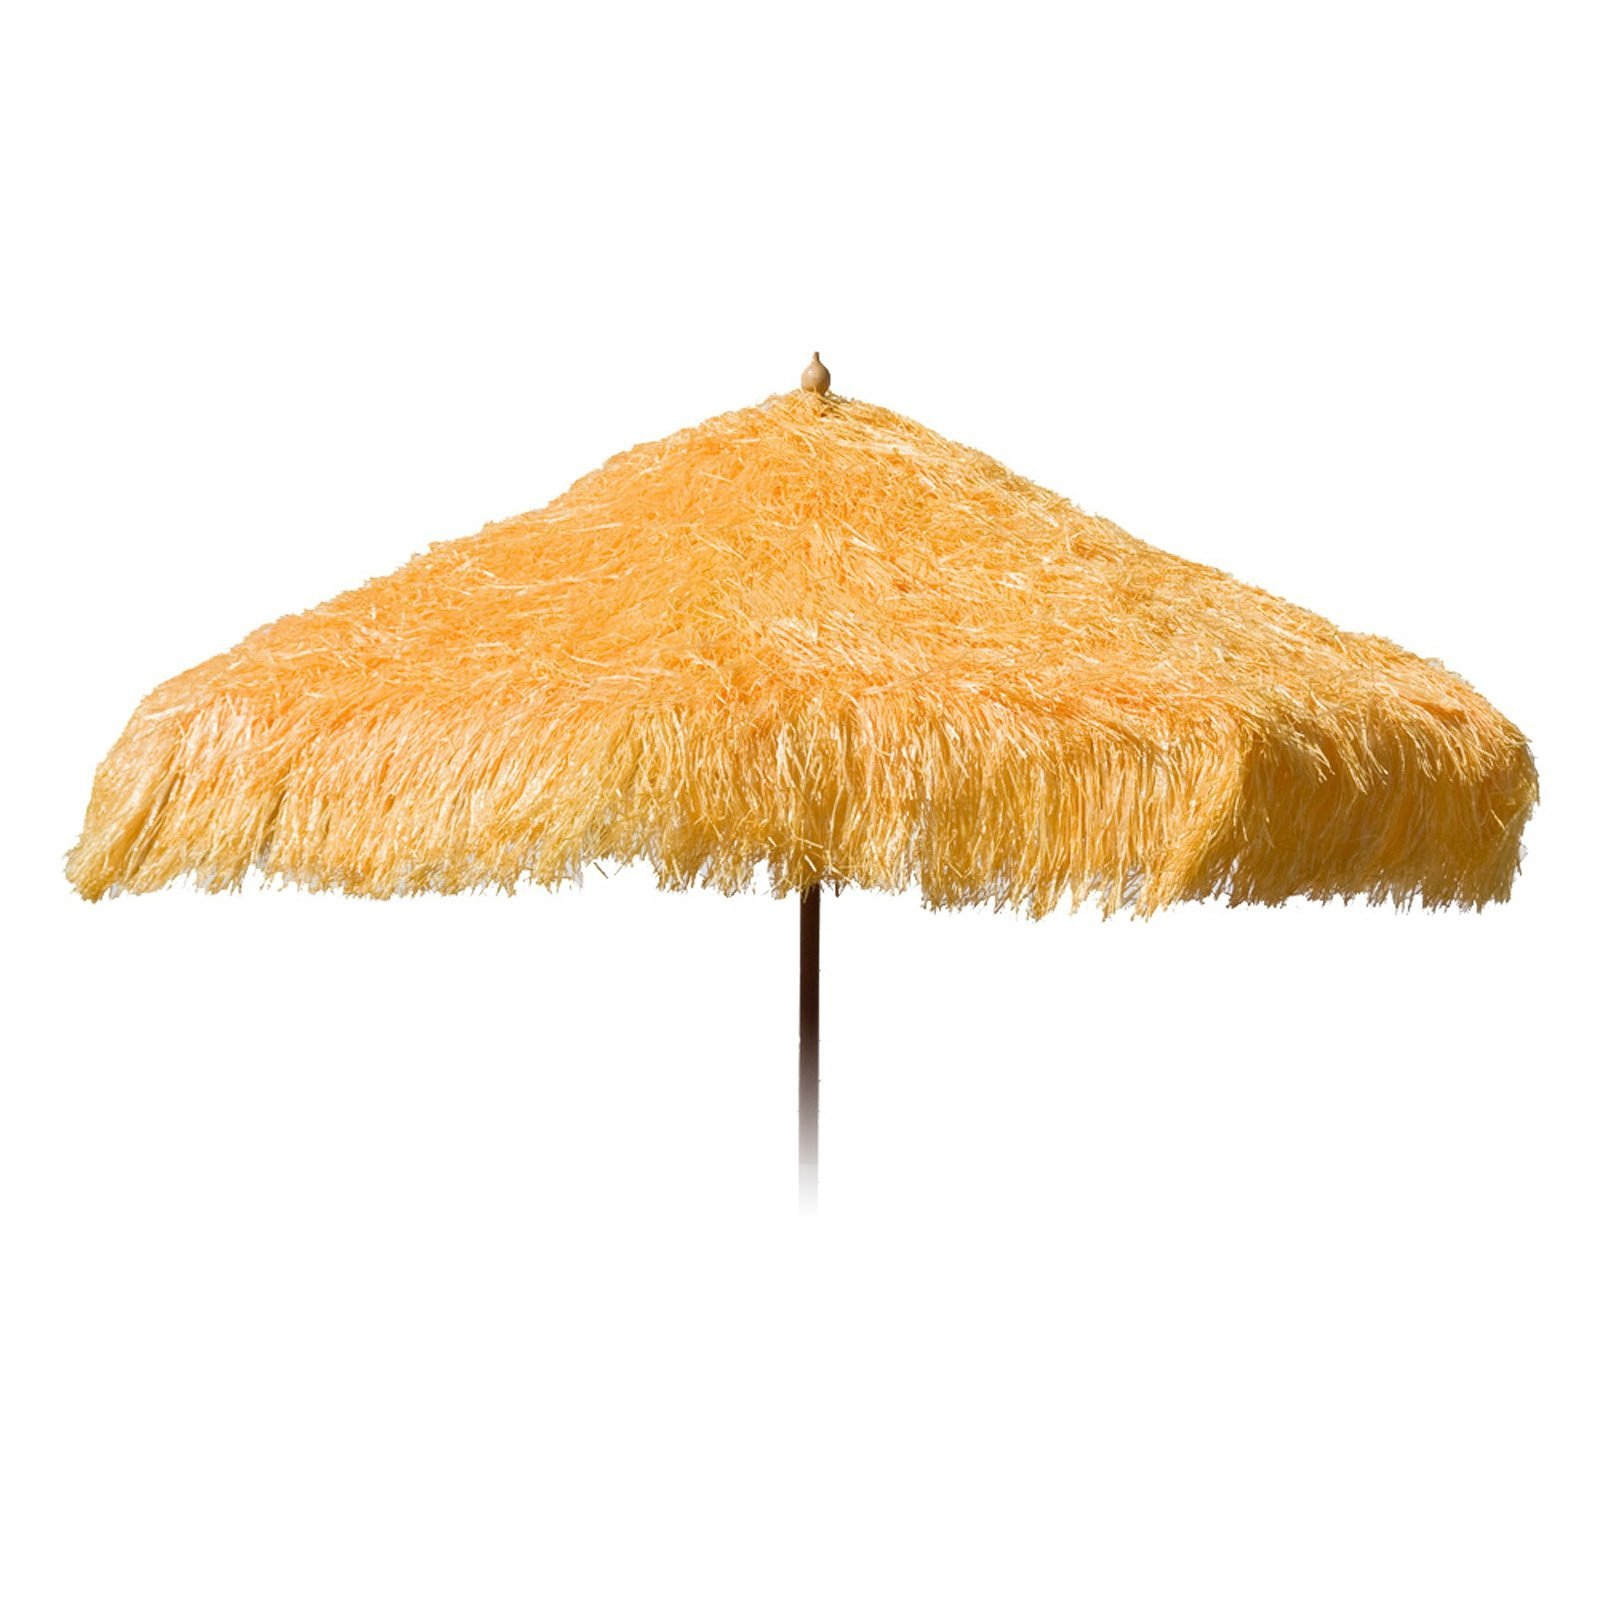 9ft Palapa Tiki Party Umbrella Home Patio Canopy Sun Yellow - Patio Pole